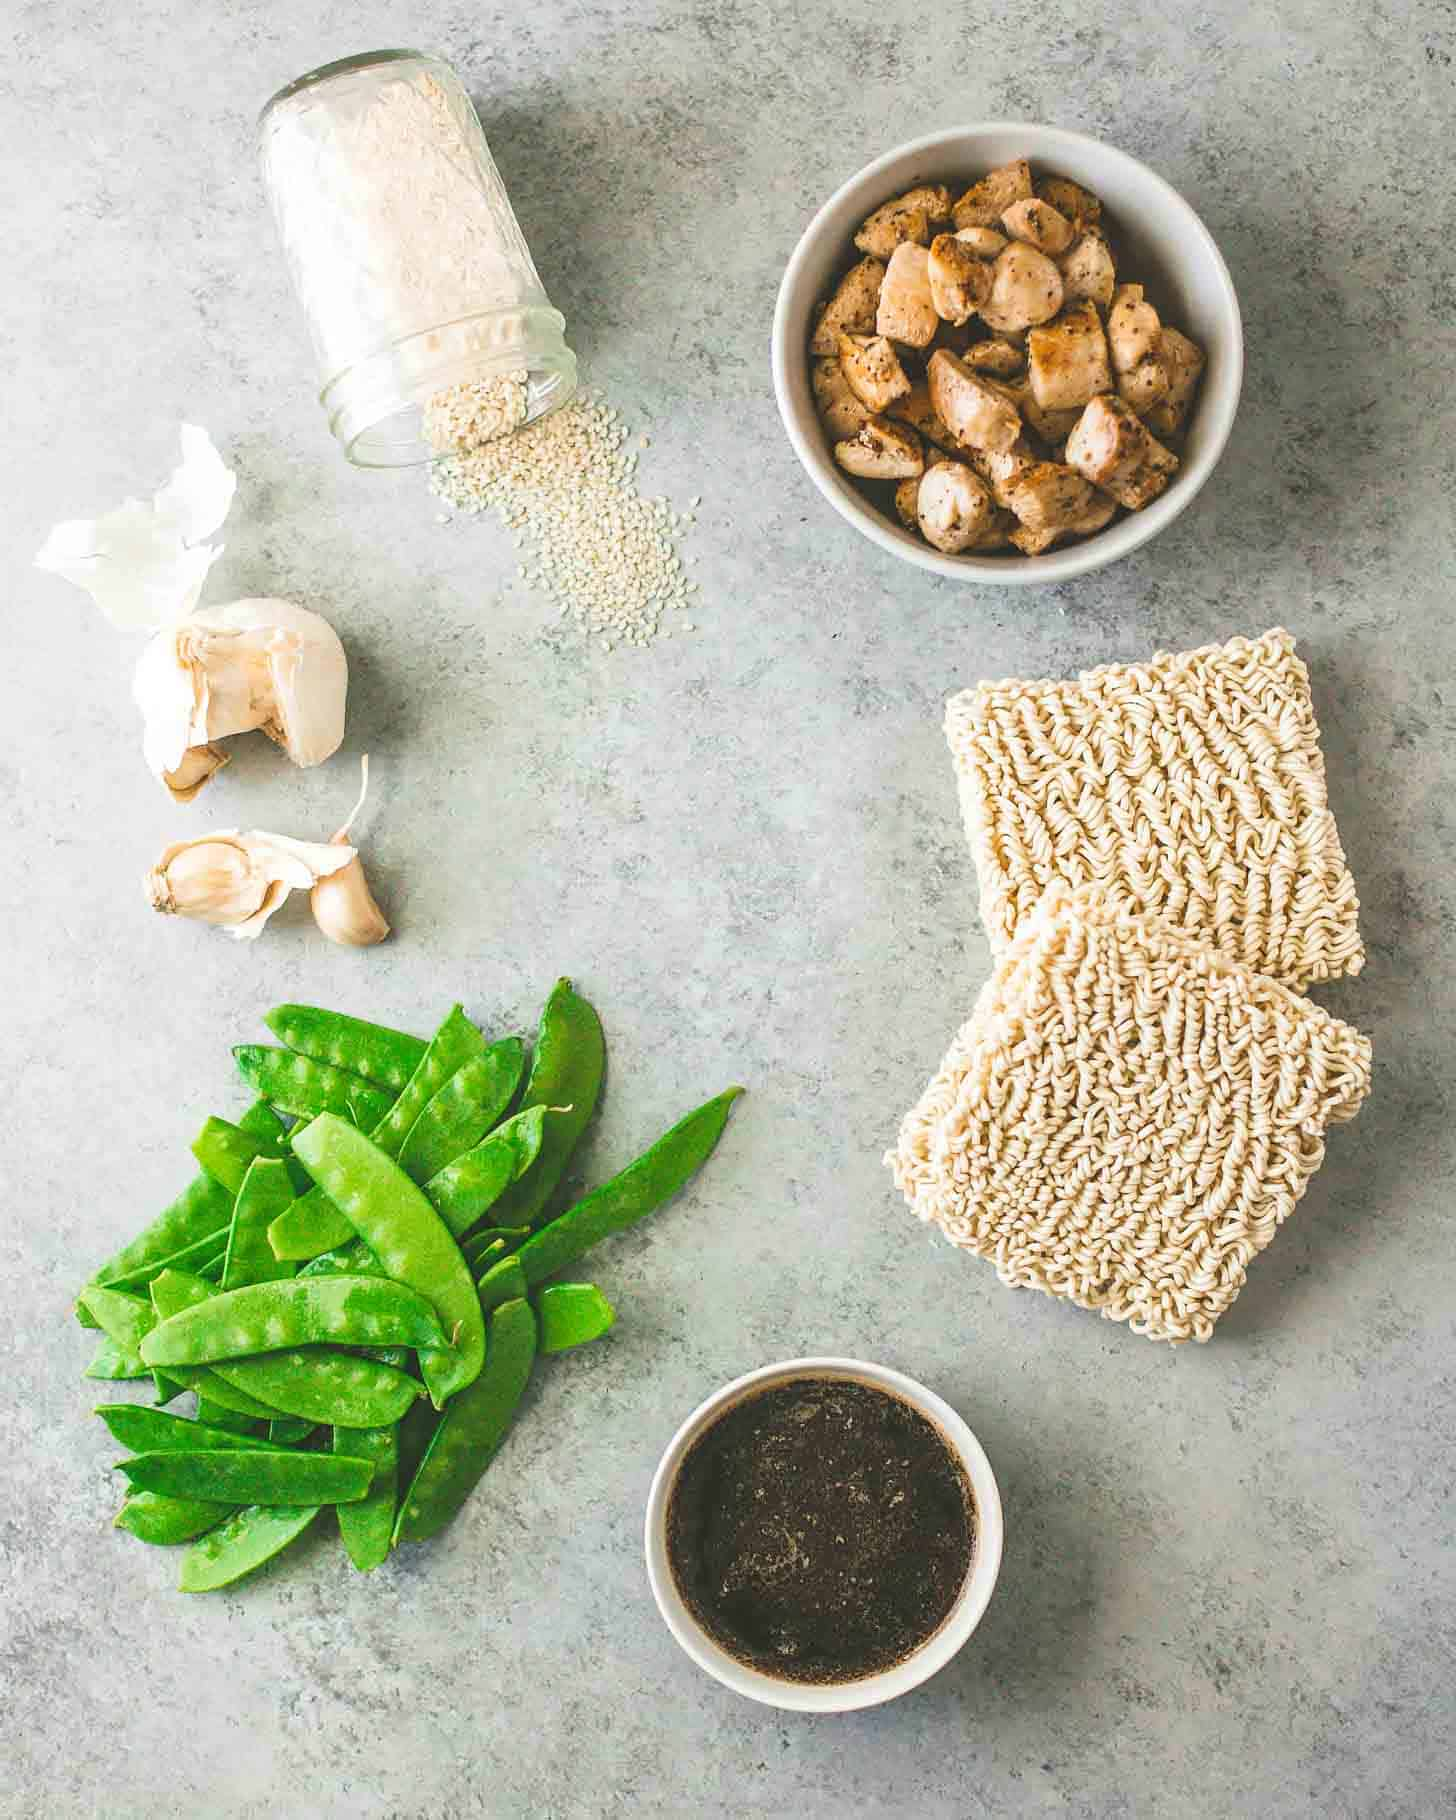 Snow peas, sauce, ramen noodles, chicken and spices